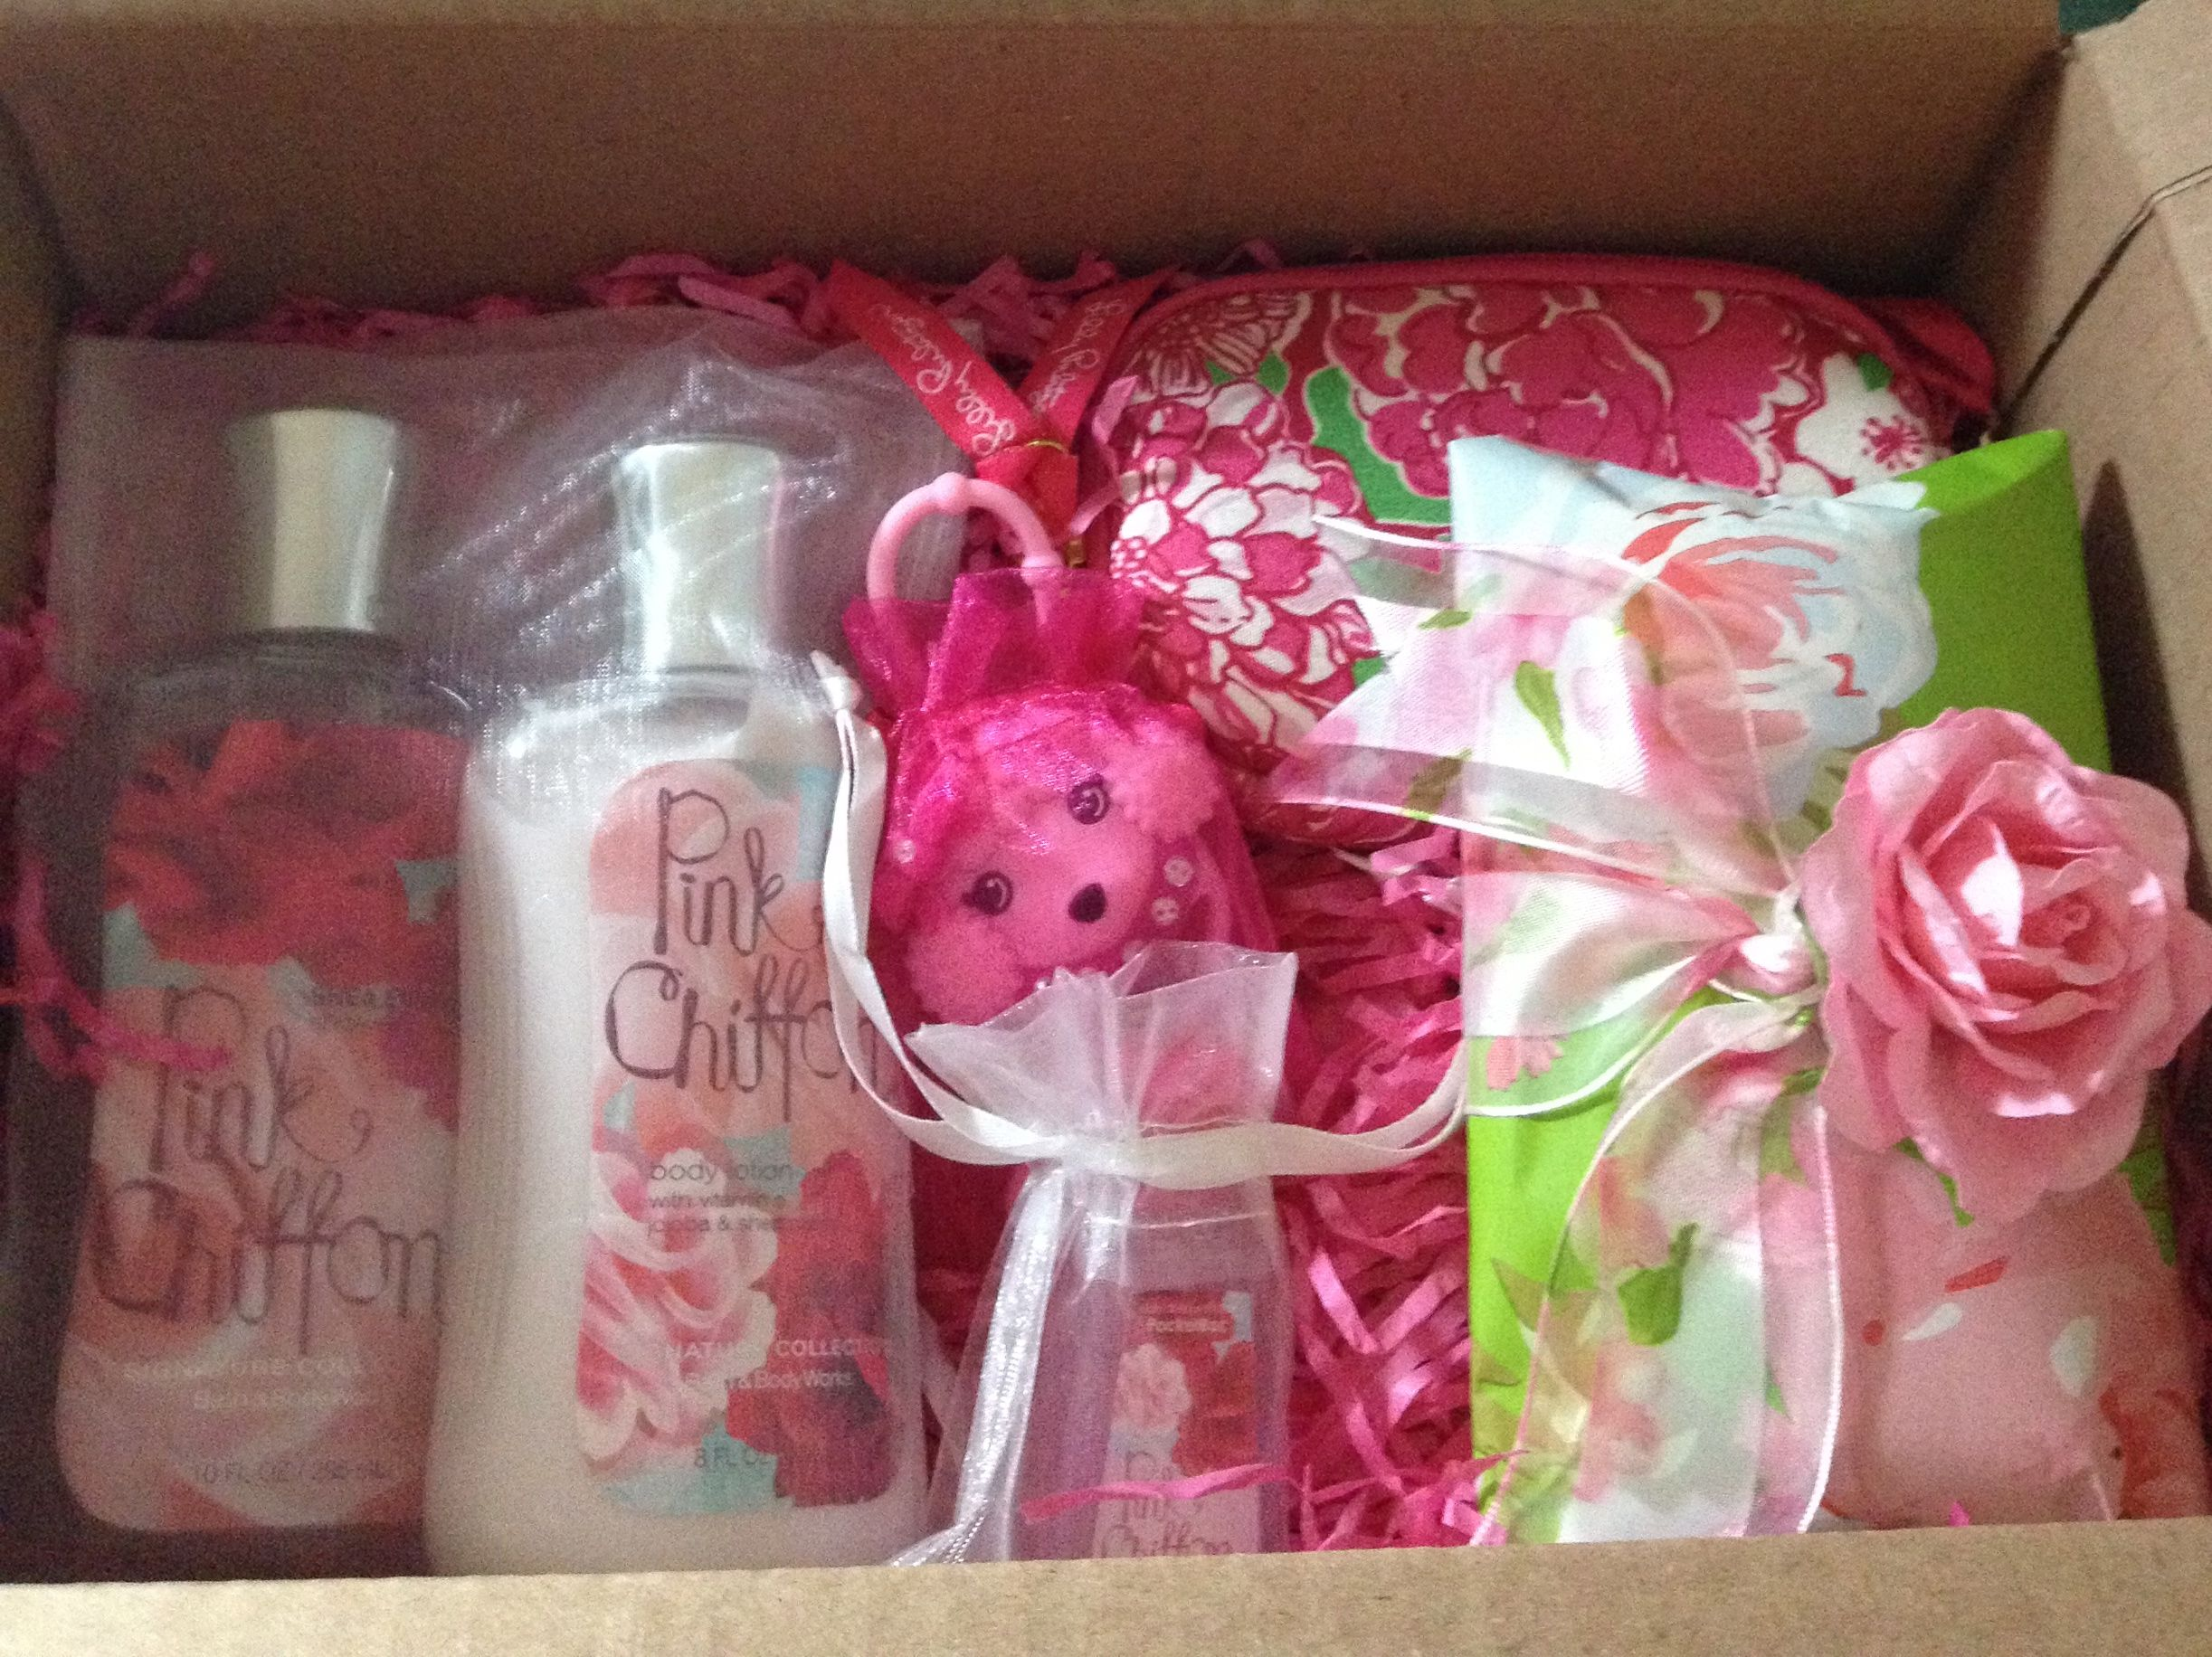 Cute gift idea for a Tween! @bathandbodyworks